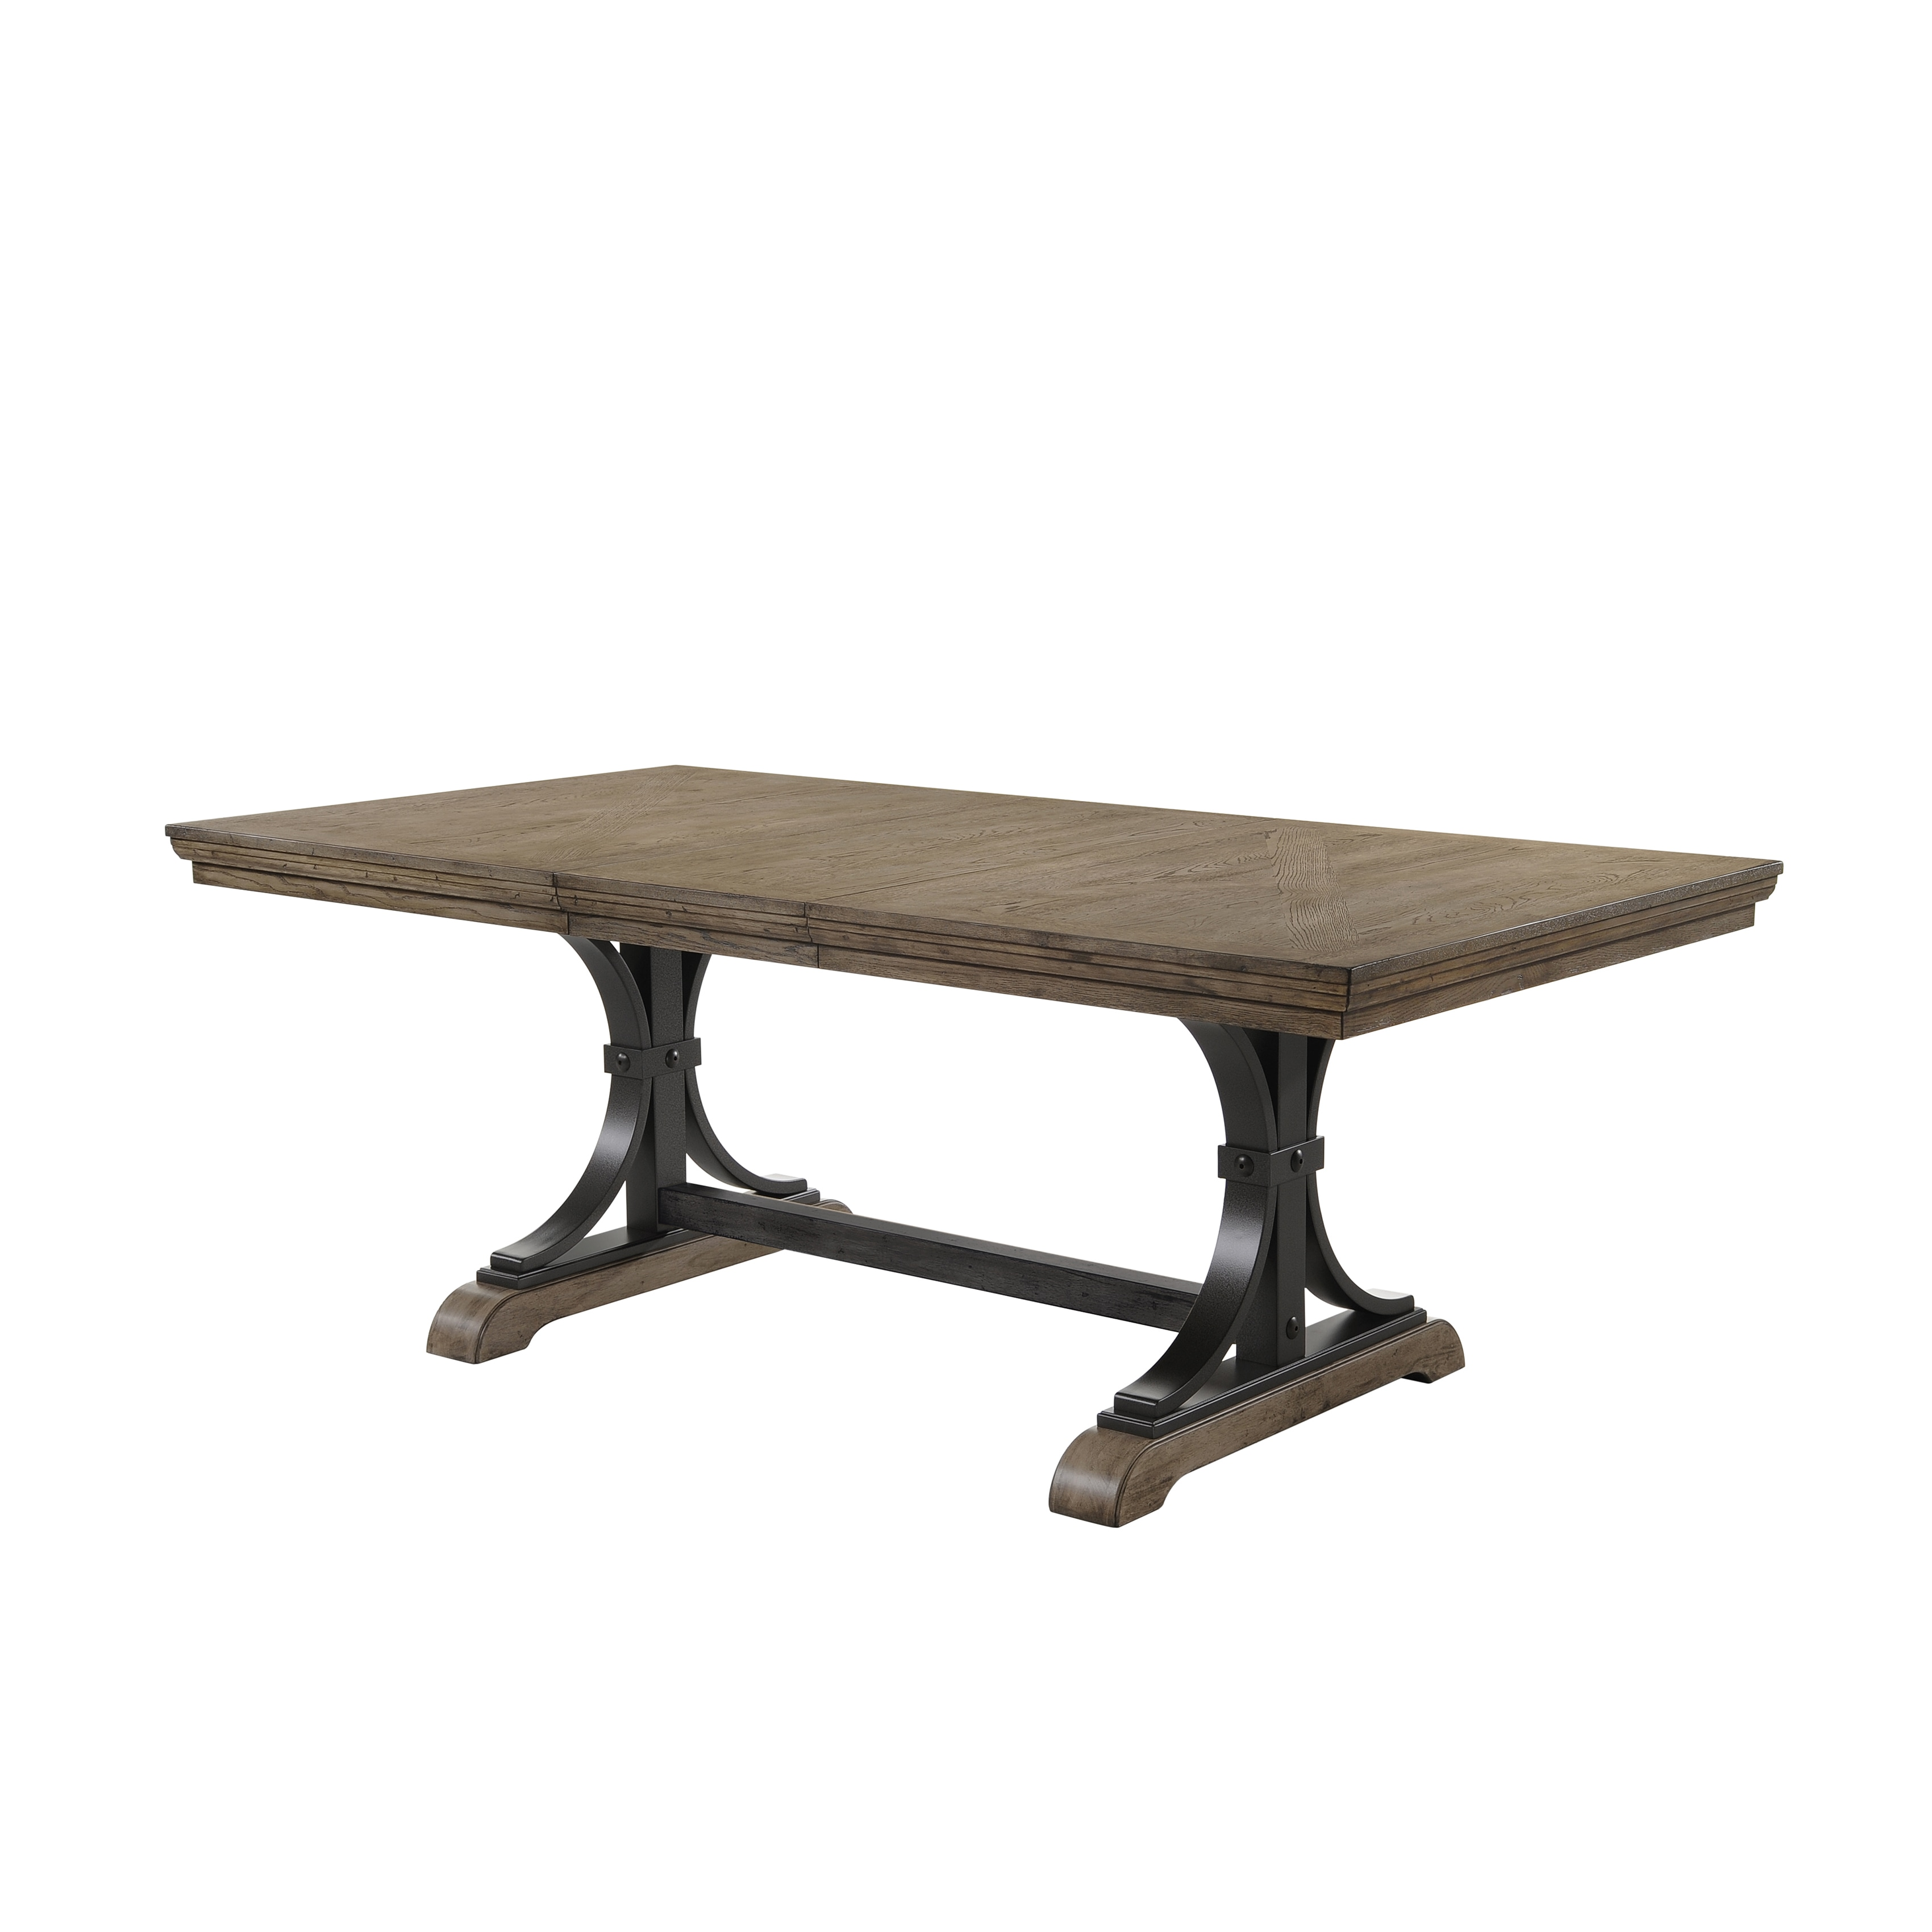 Shop Birmingham 7 Piece Driftwood Finish Table With Nail Head Arm Chairs  Dining Set   Free Shipping Today   Overstock.com   16685637